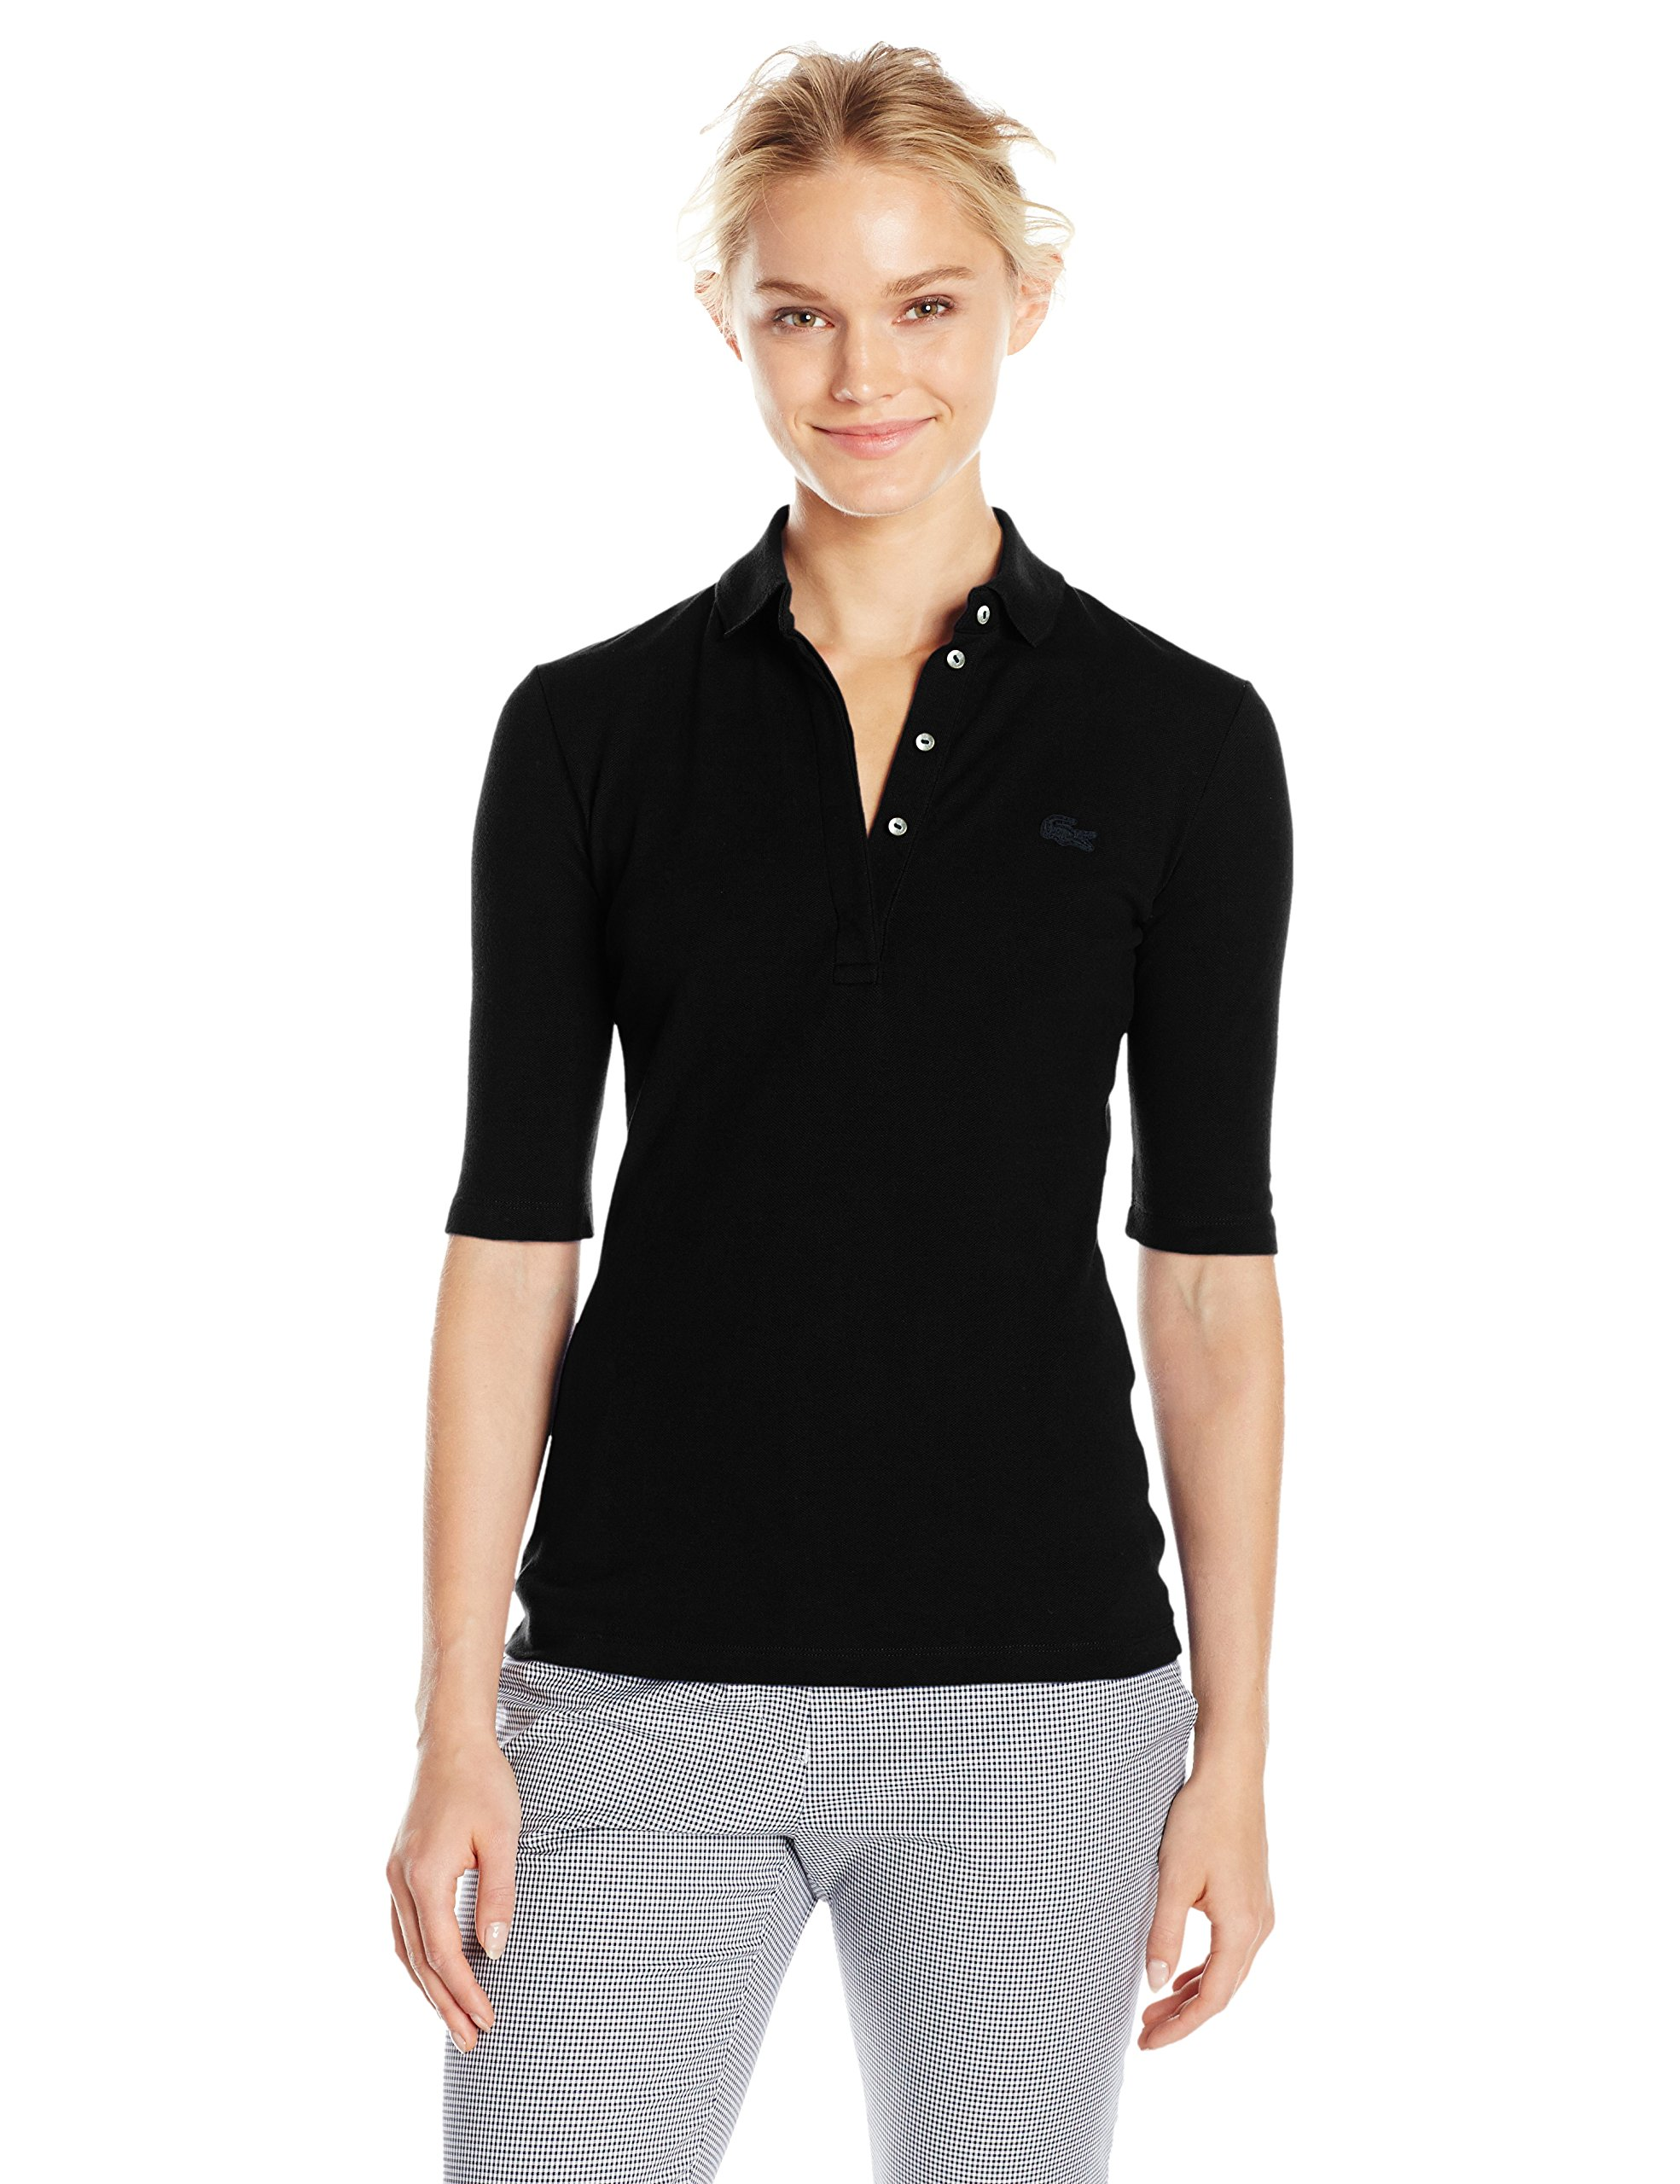 Lacoste Women's Classic Half Sleeve Slim Fit Stretch Pique Polo, PF7844, Black, 10 by Lacoste